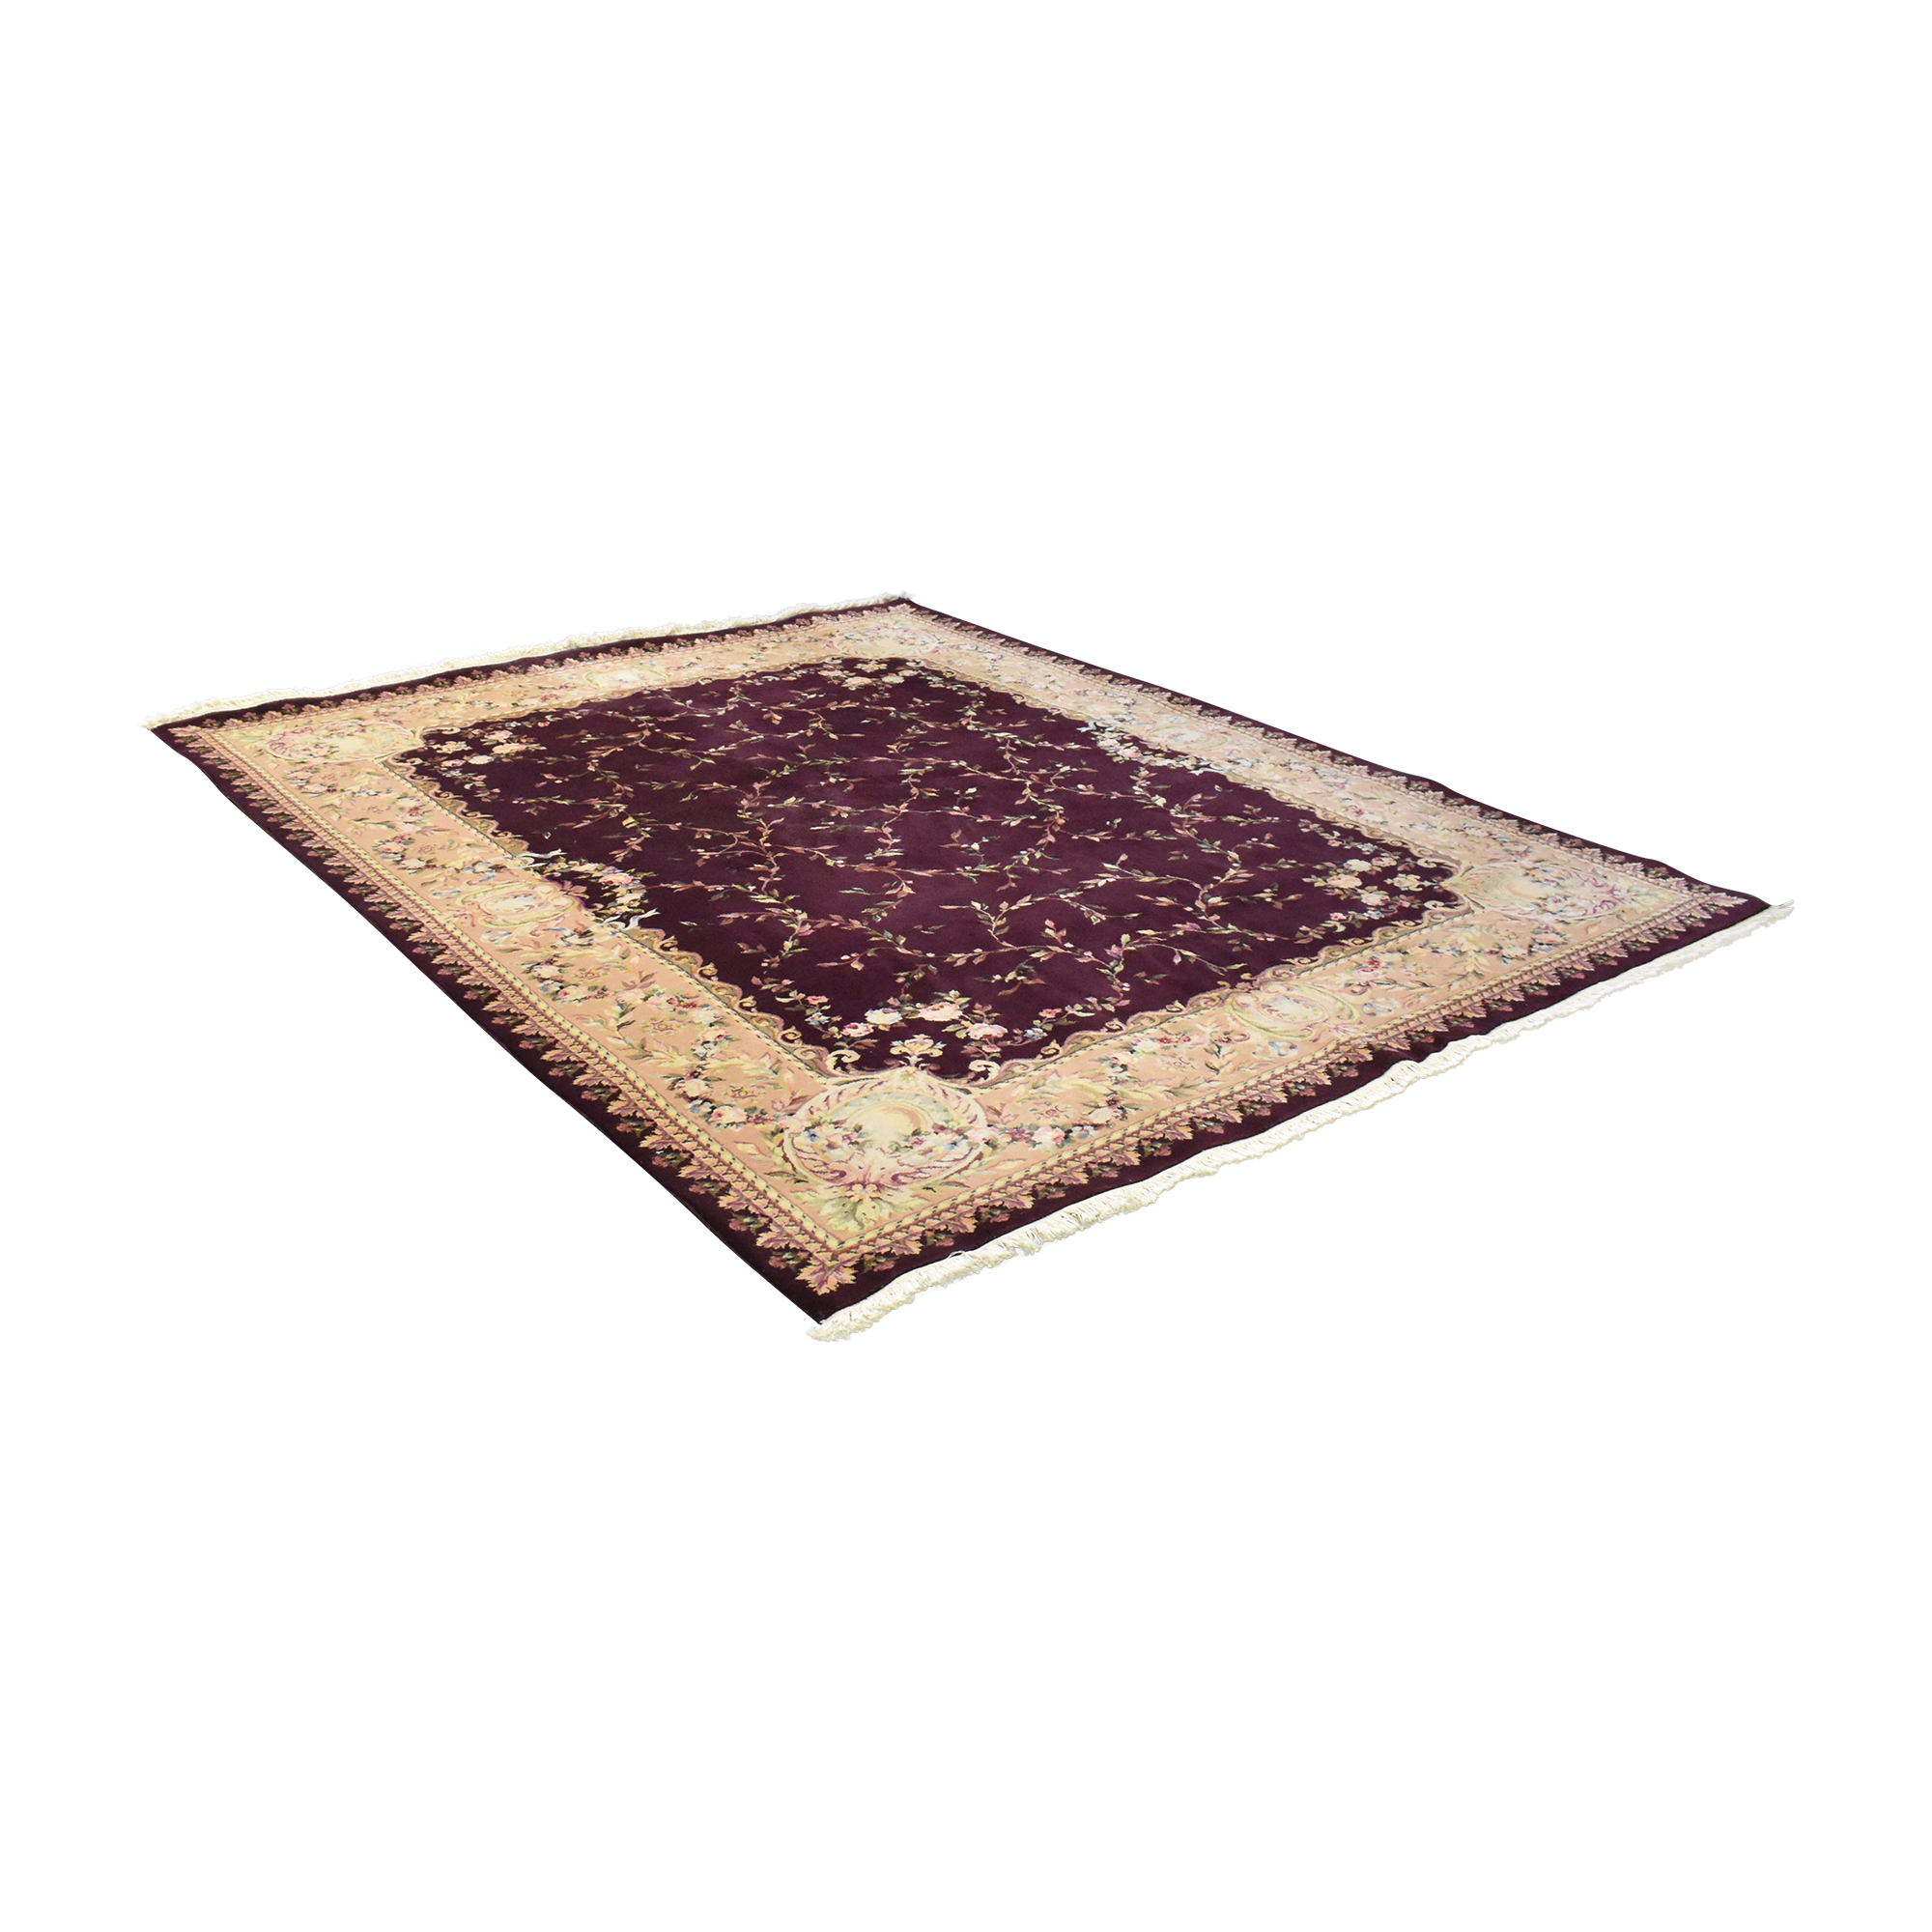 Floral Patterned Area Rug second hand